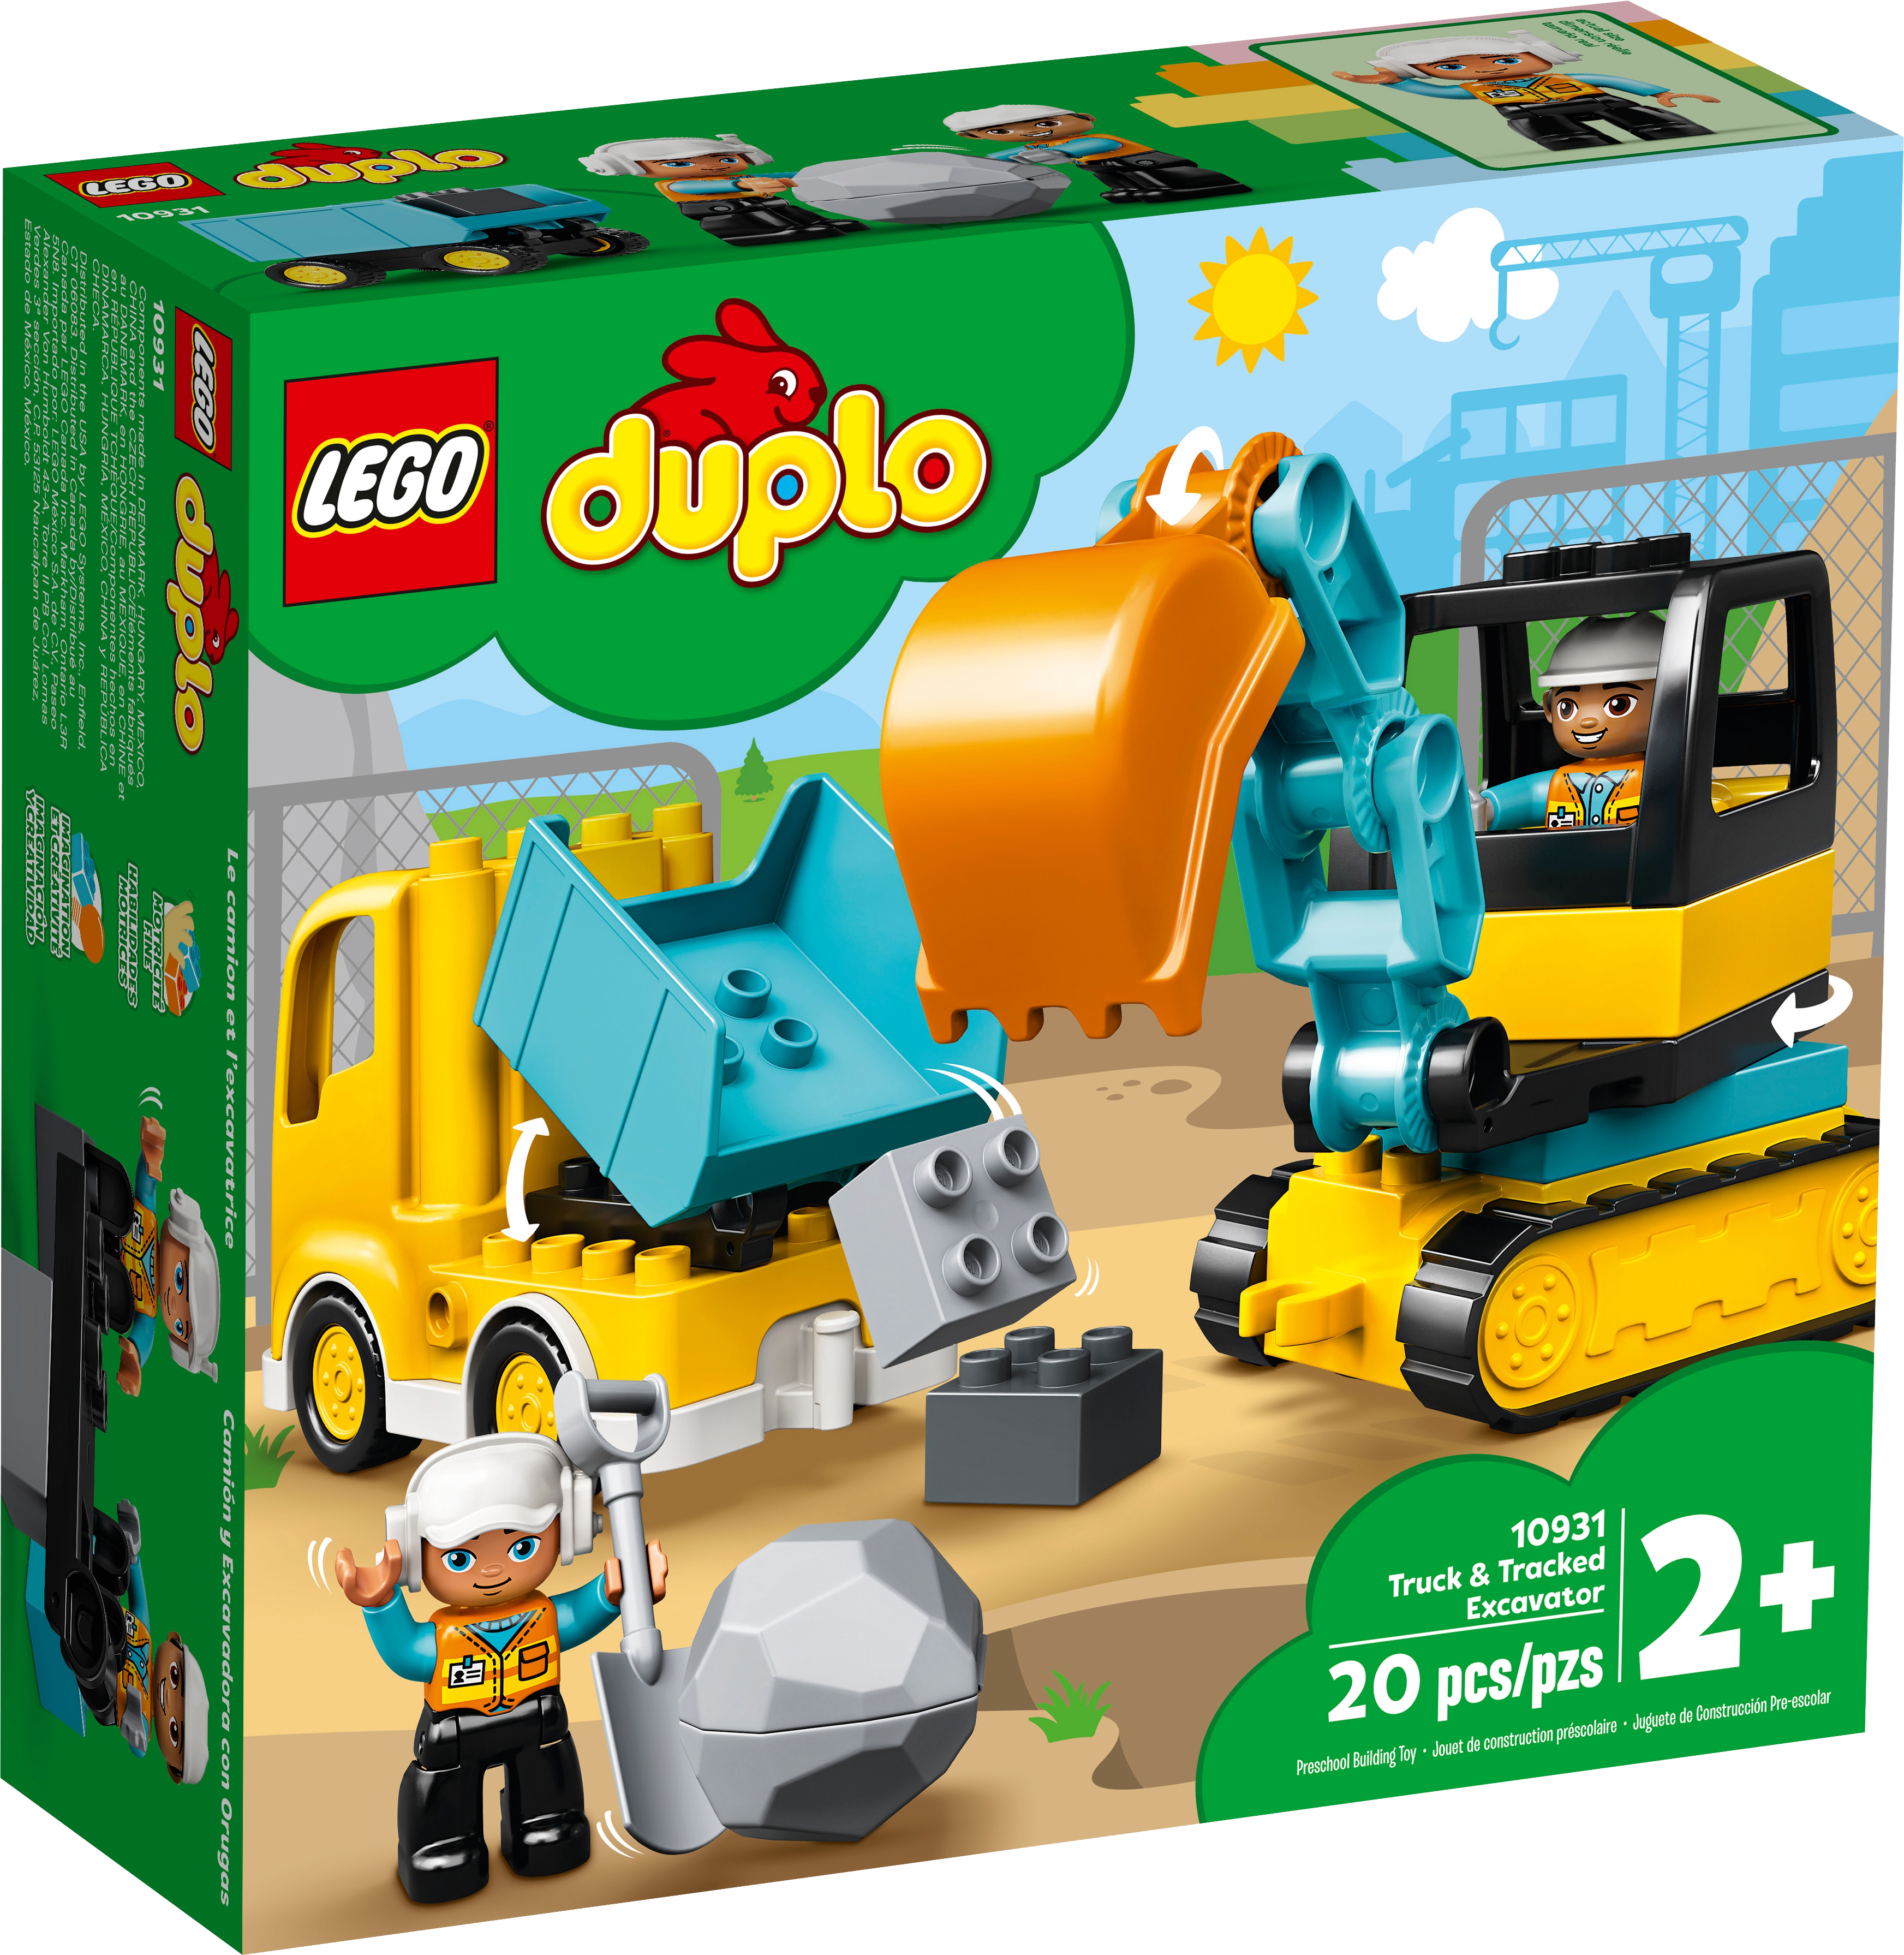 Lego Duplo - Truck and Tracked Excavator